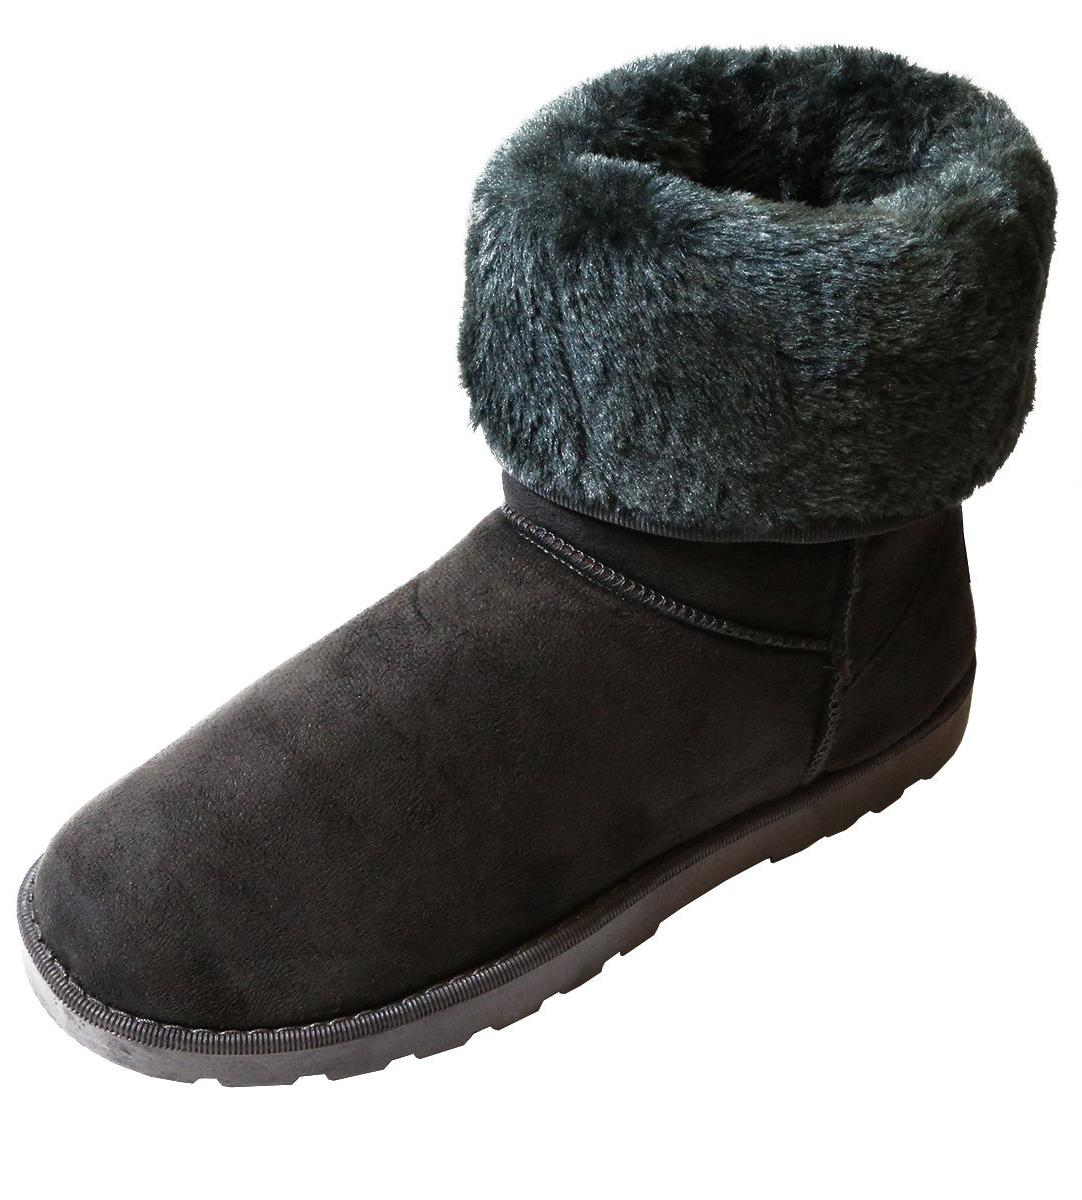 Winter Boots Fur Warm Fashion Plush 4